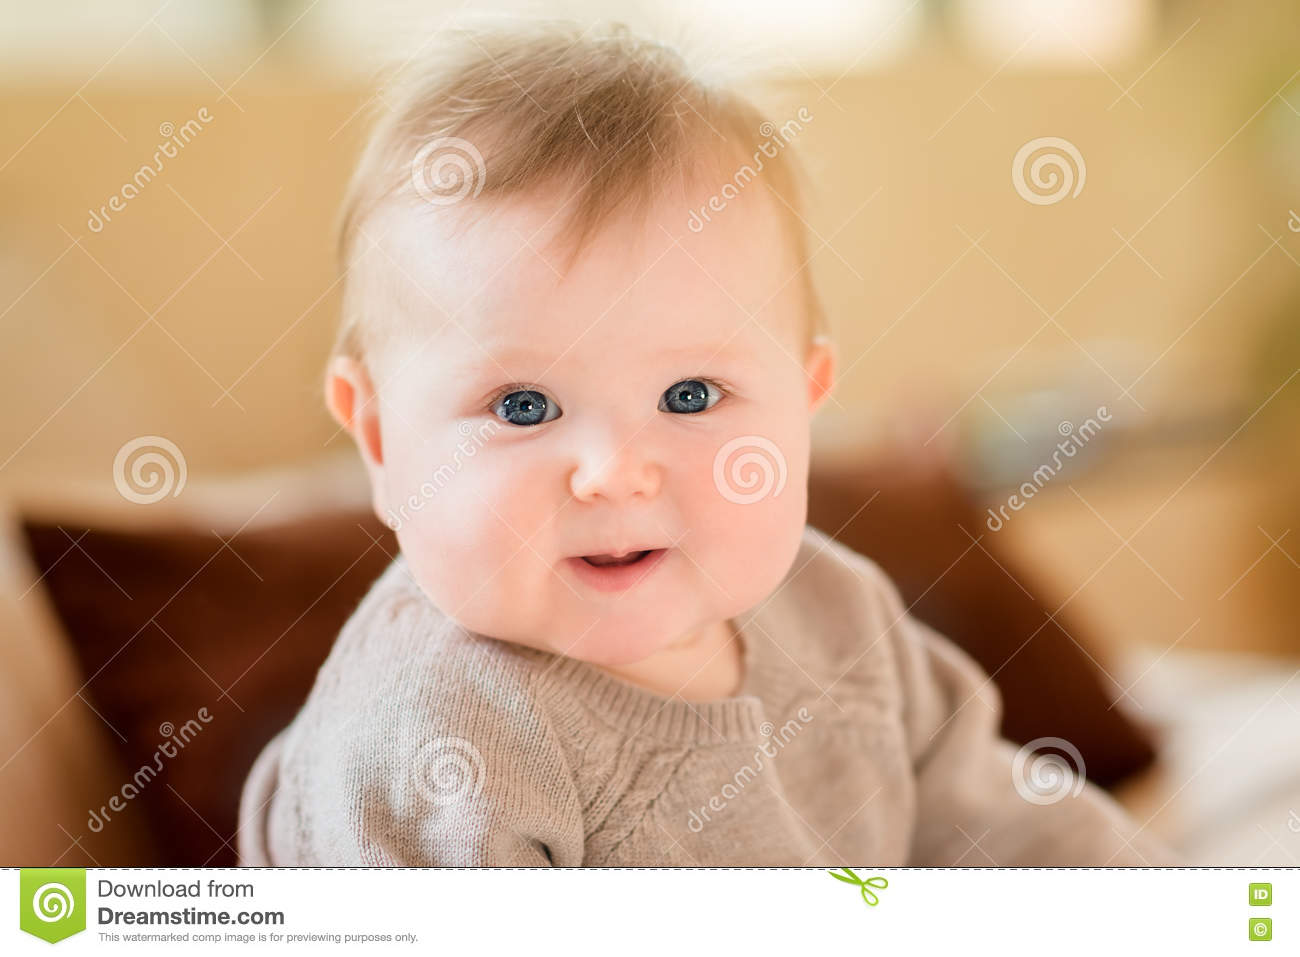 Closeup portrait of smiling little child with blond hair and blue eyes wearing knitted sweater sitting on sofa